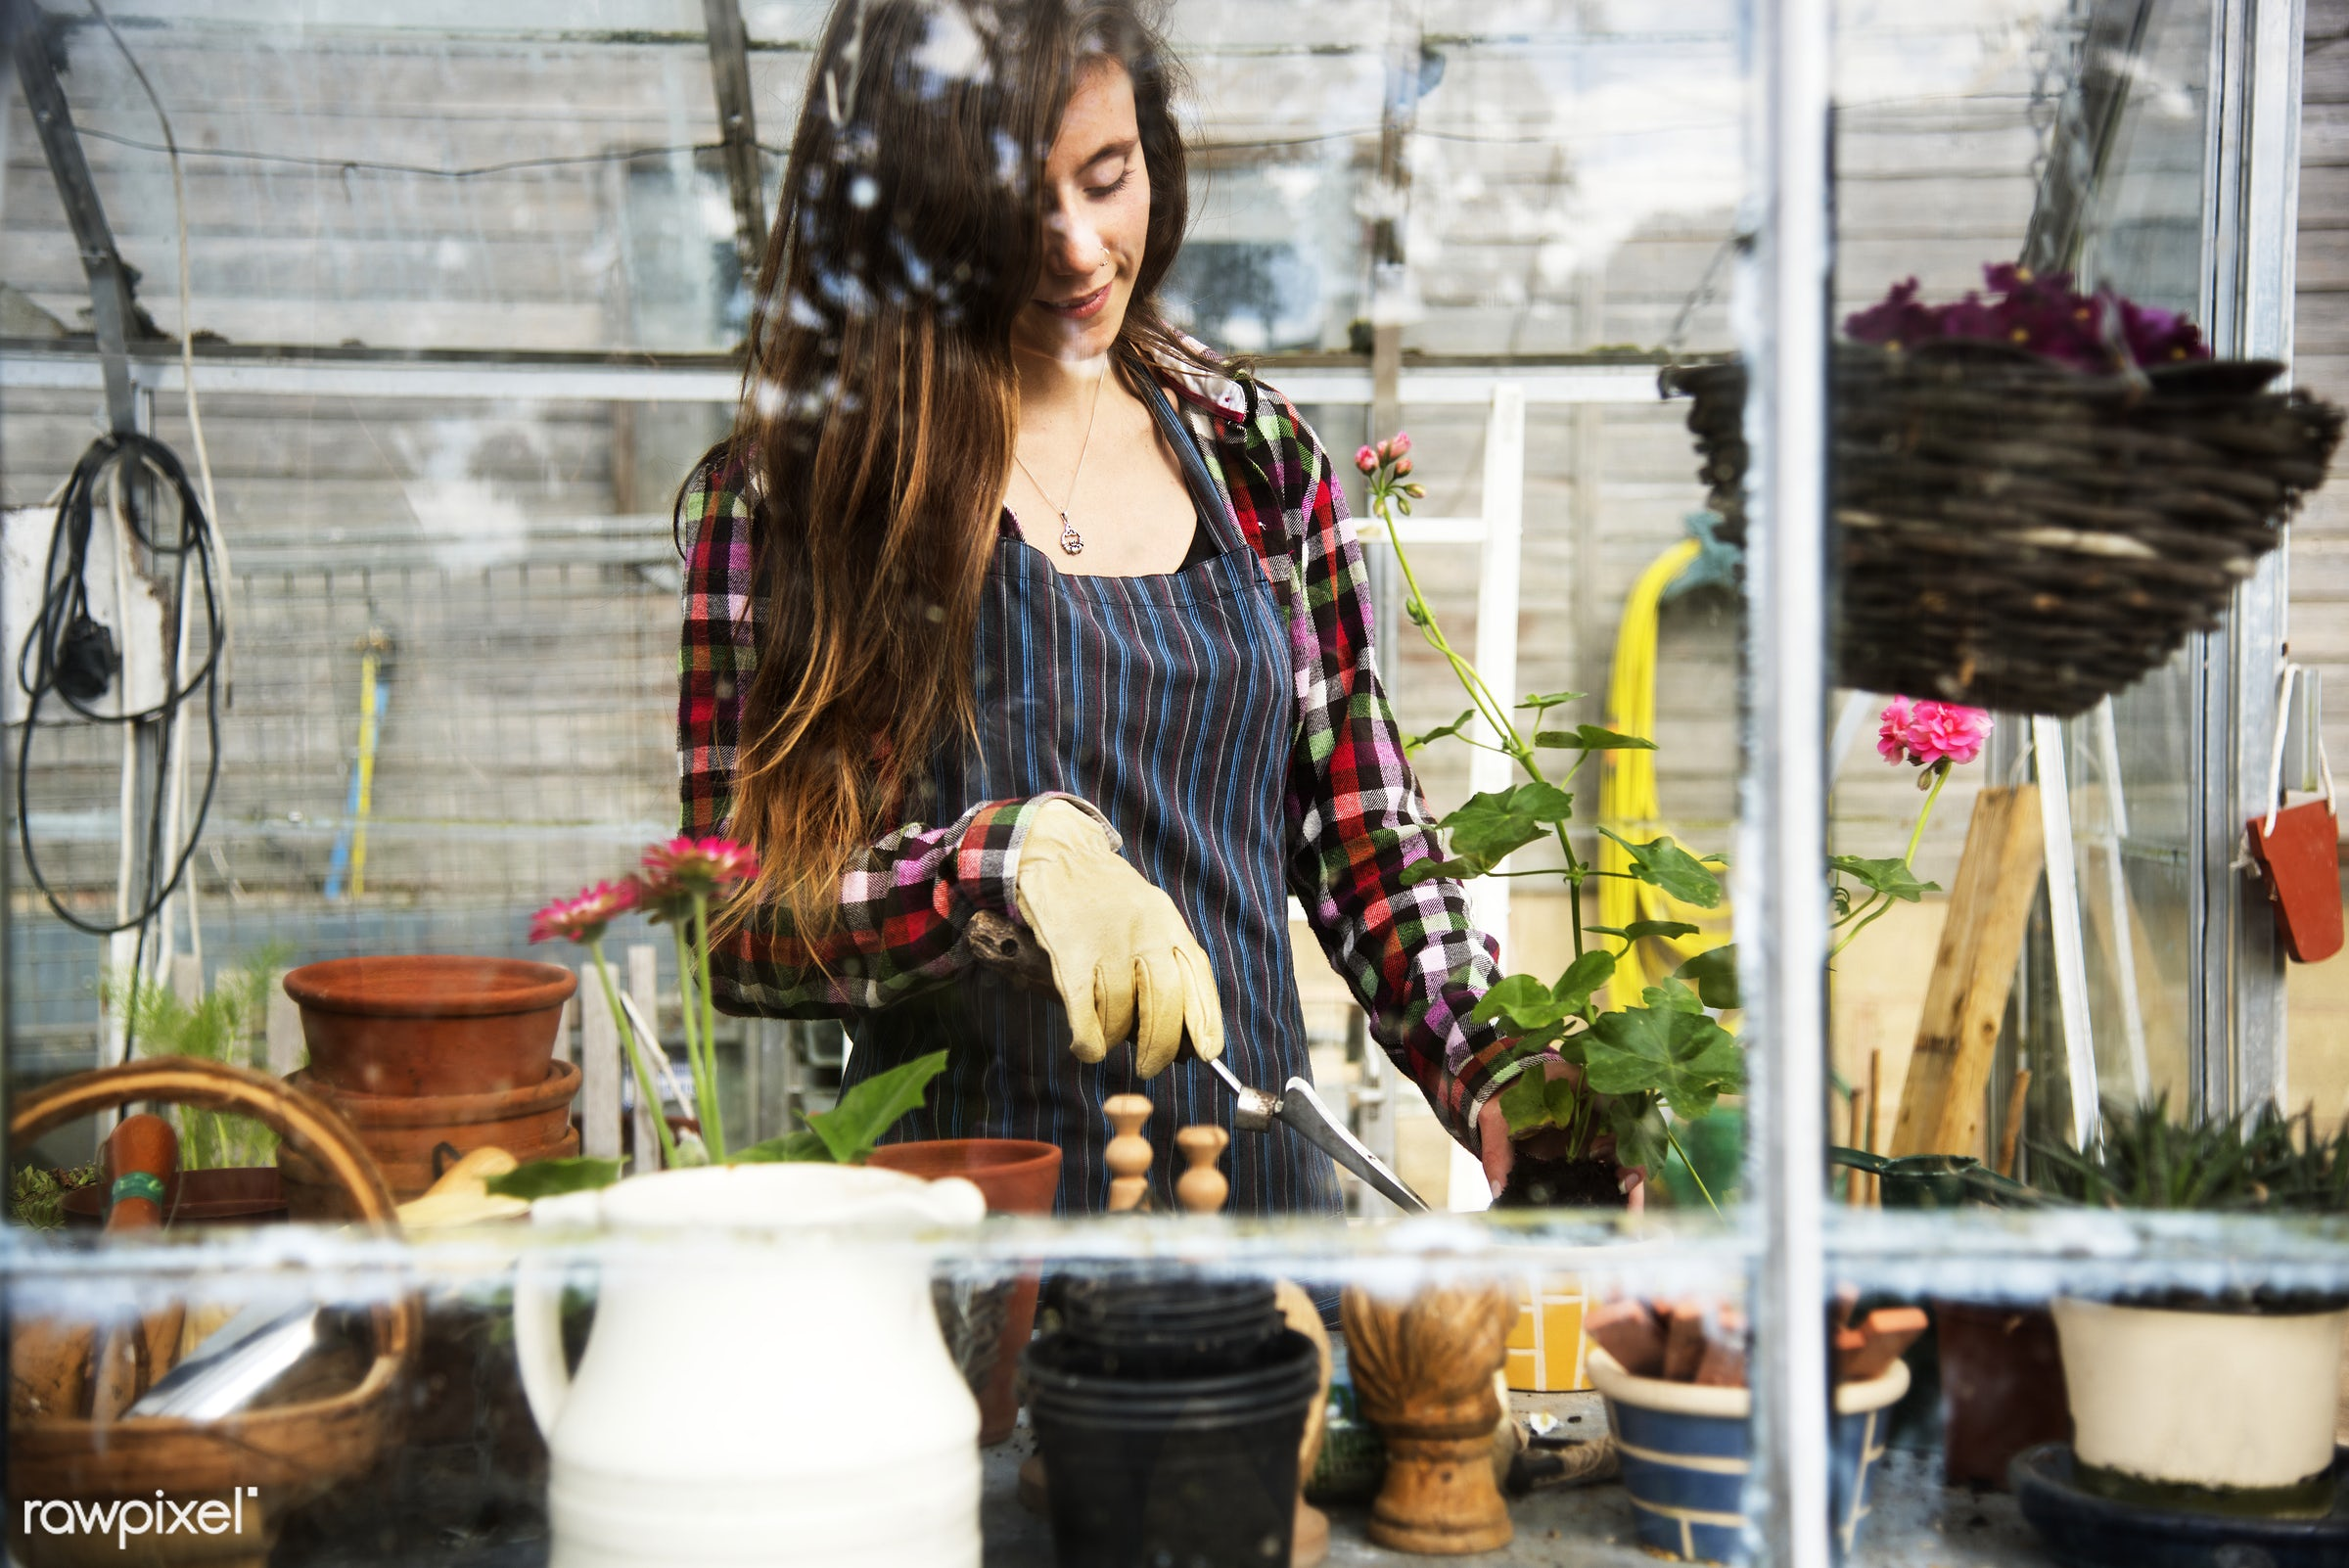 Young woman in the glass greenhouse - agriculture, backyard, bloom, botanical, botany, building, cares, countryside,...